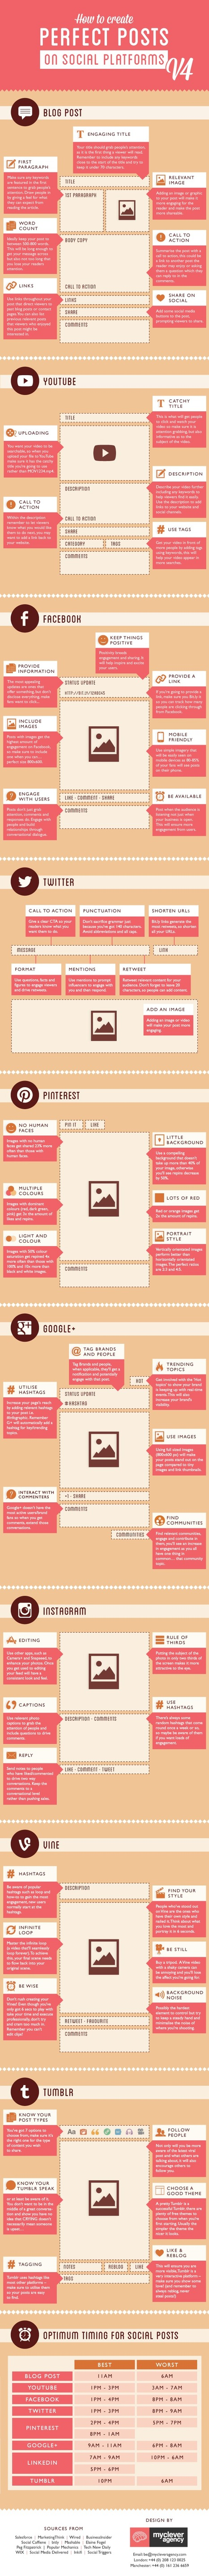 The Art of Creating Perfect Social Media Posts - infographic | Teaching with technology | Scoop.it